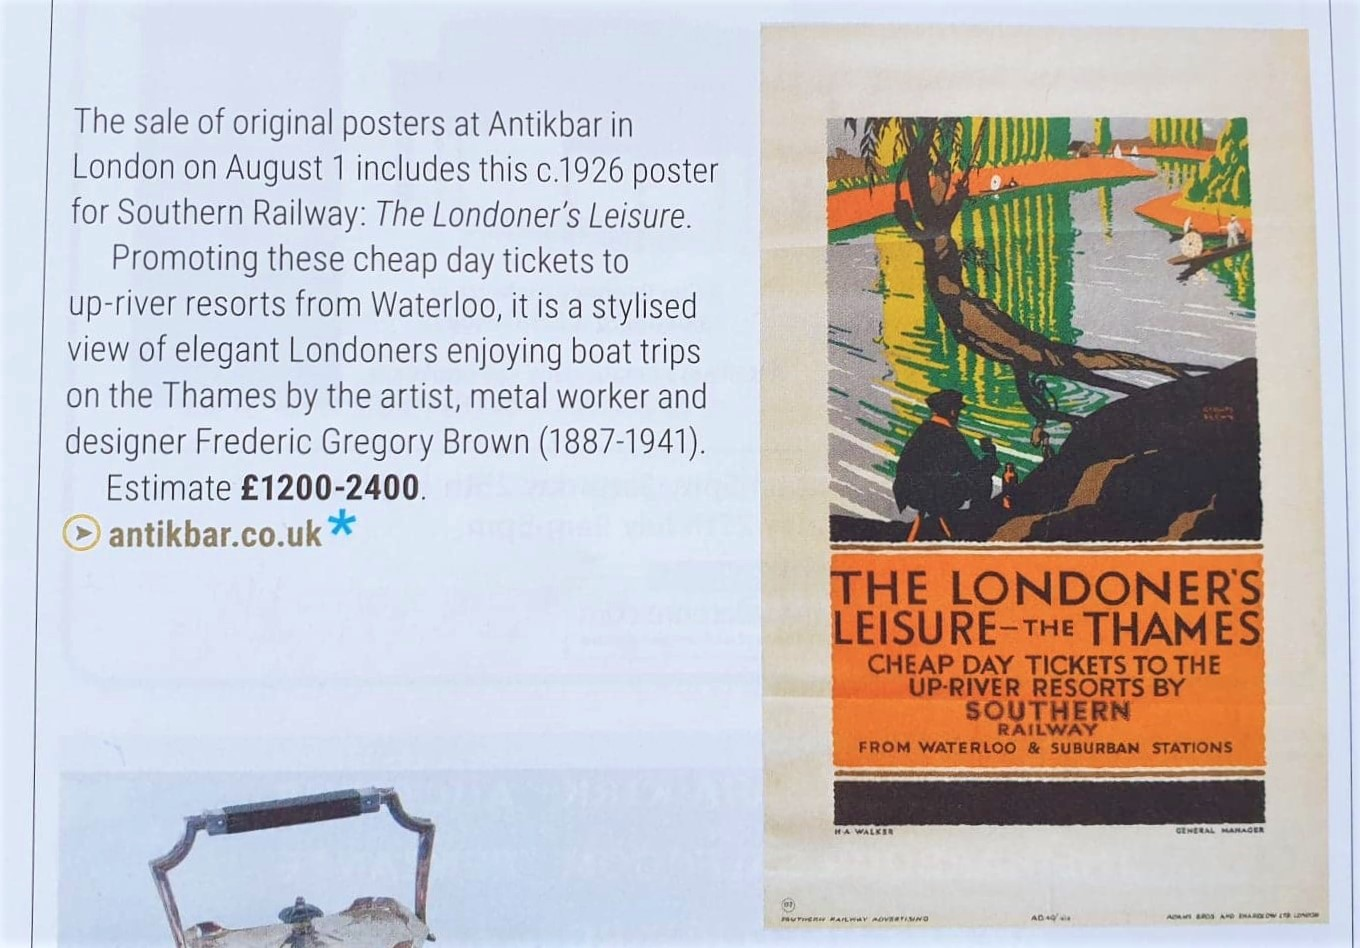 ATG AntikBar Poster Auction 1 August 2020 Londoners Thames